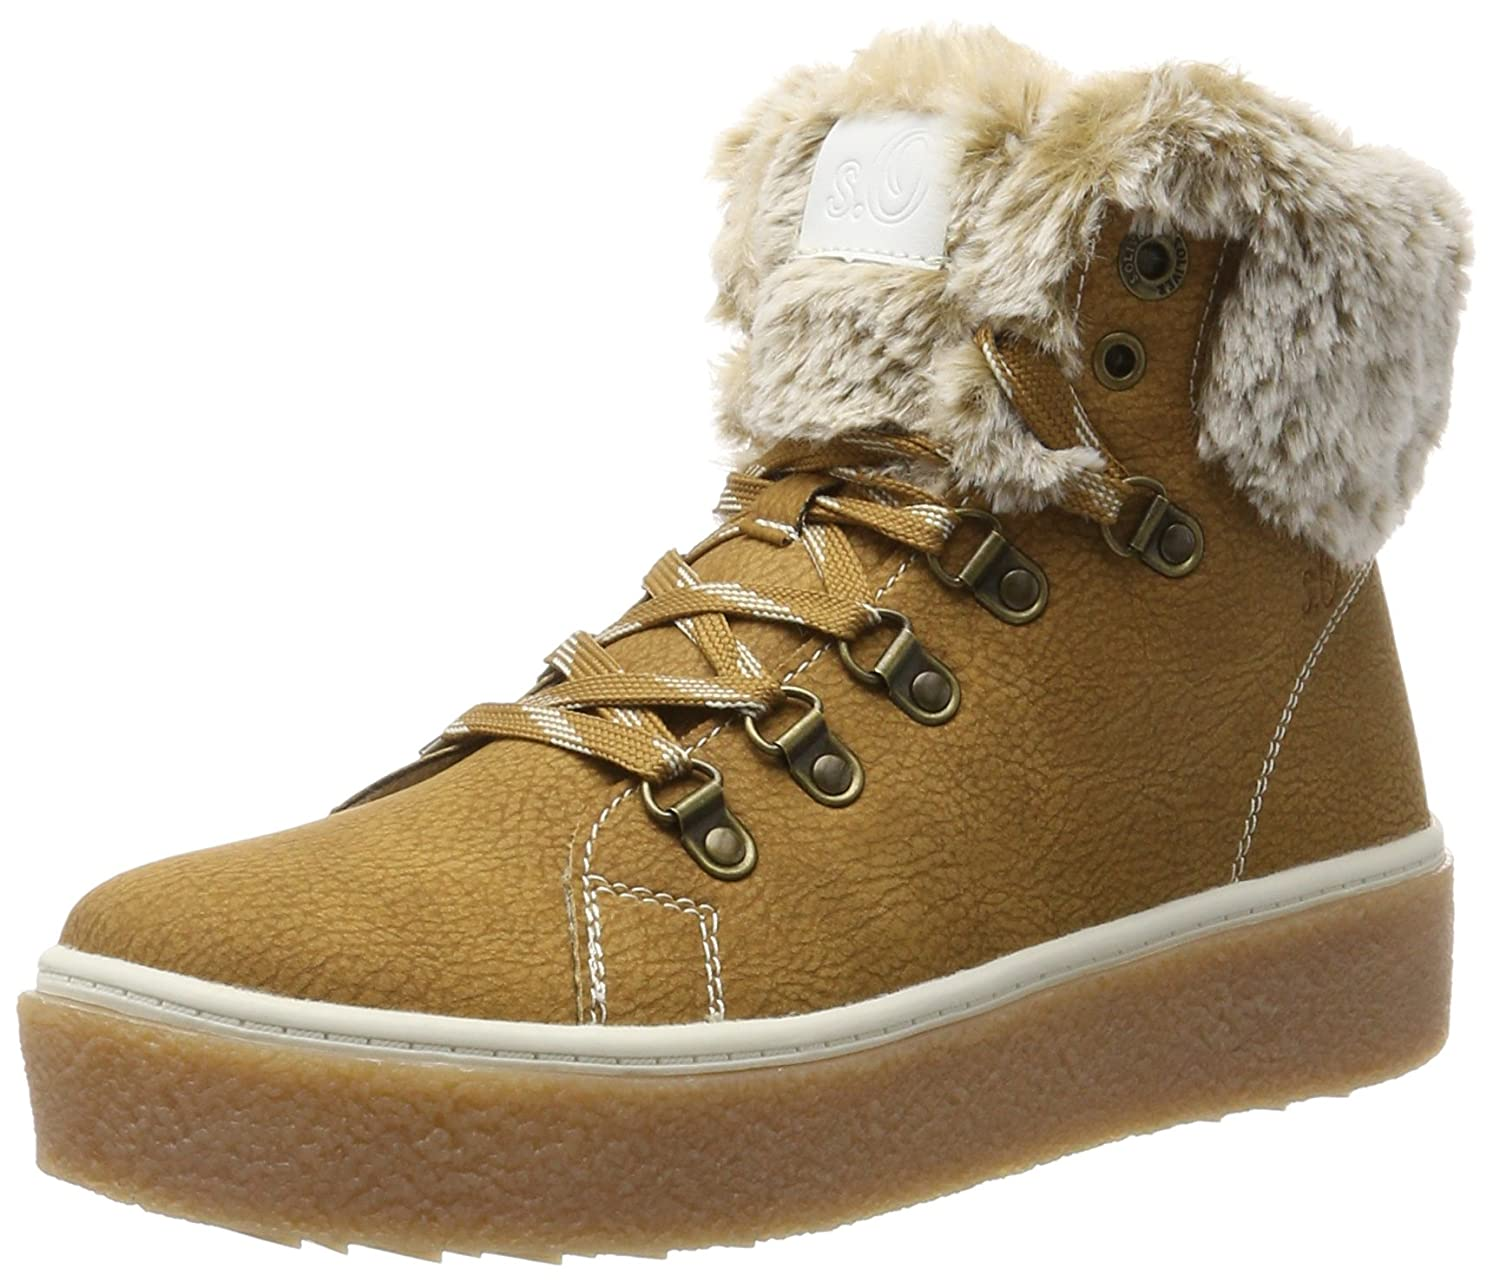 s.Oliver 26226, Bottes Bottes de 4164 Femme Neige Femme Marron (Muscat) 43e284f - therethere.space